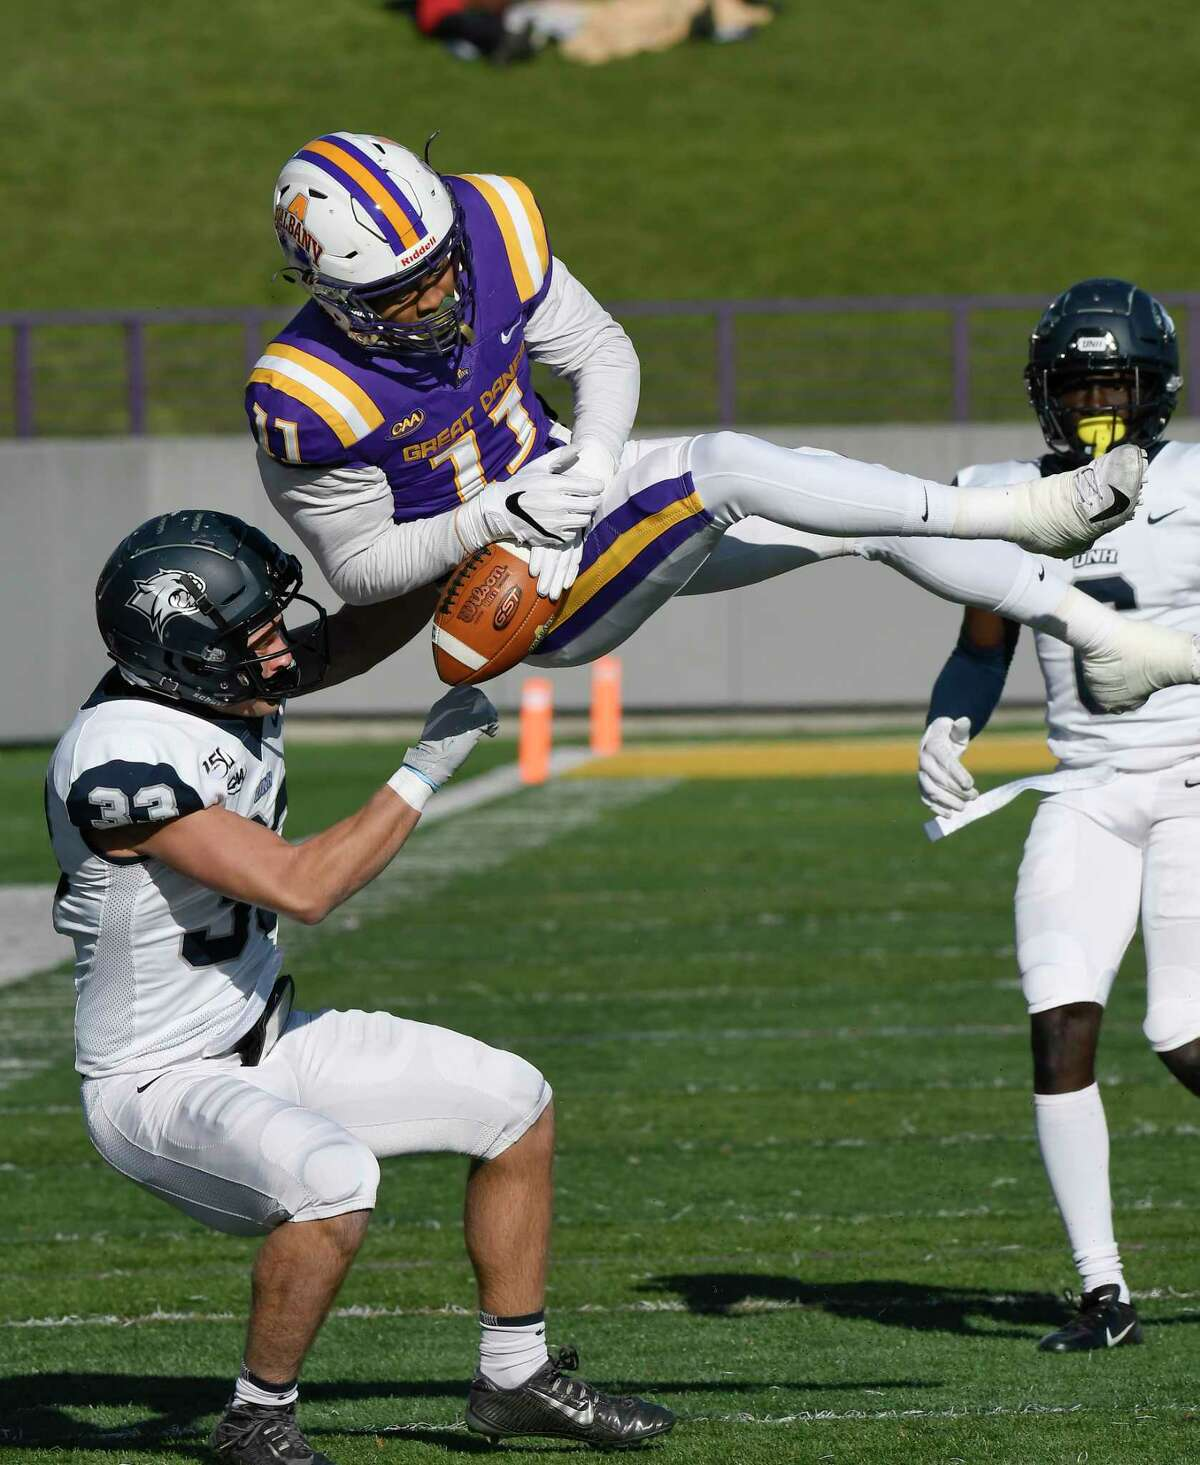 New Hampshire safety Evan Horn (33) breaks up a pass intended for University at Albany wide receiver Jerah Reeves (11) during the first half of an NCAA football game Saturday, Nov. 16, 2019, in Albany, N.Y. University at Albany won the game 24-17. (Hans Pennink)